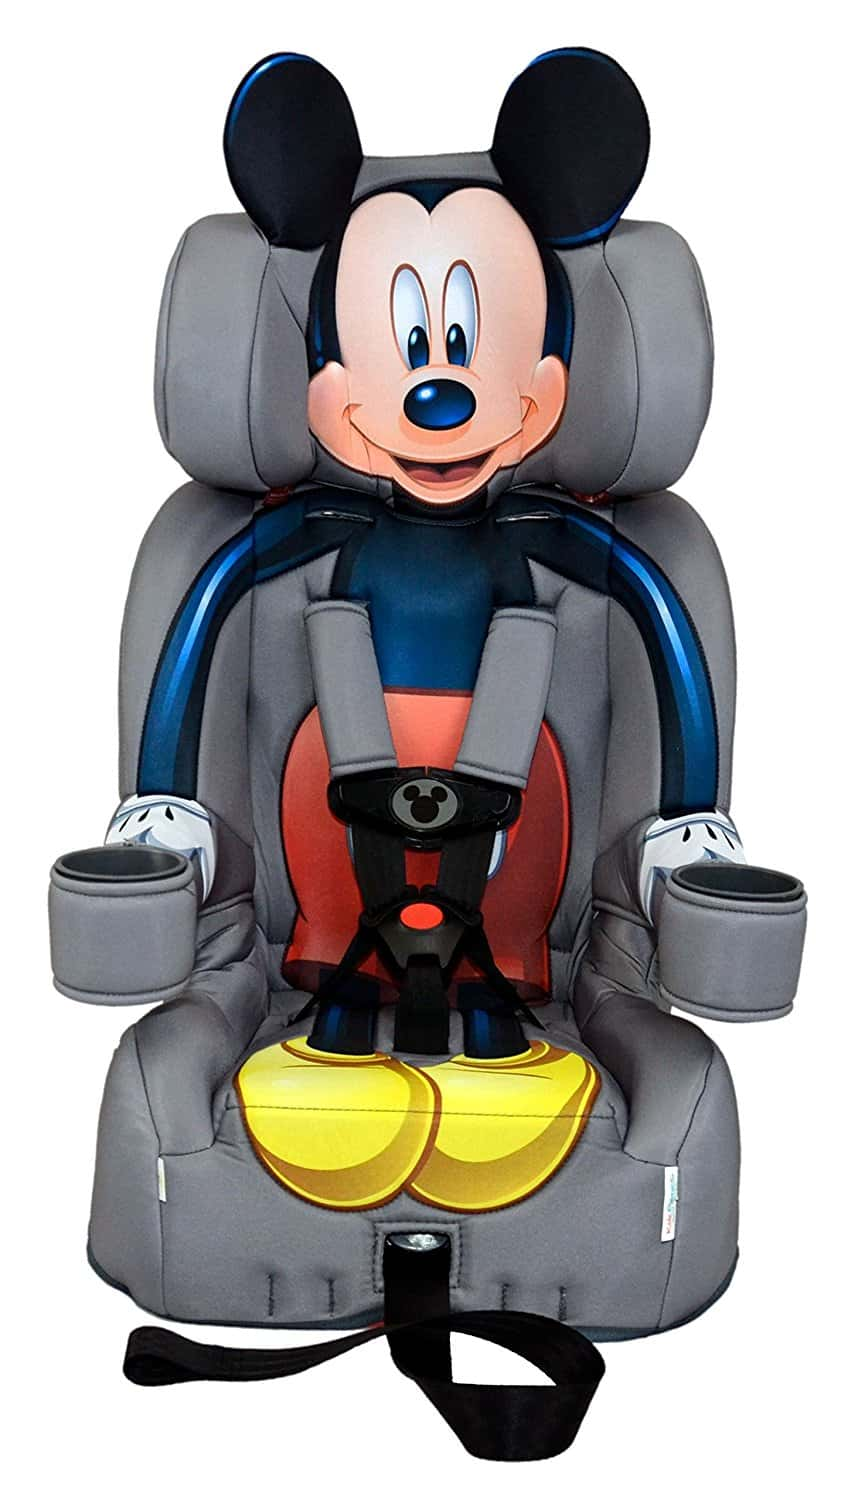 Easy To Install Toddler Car Seat